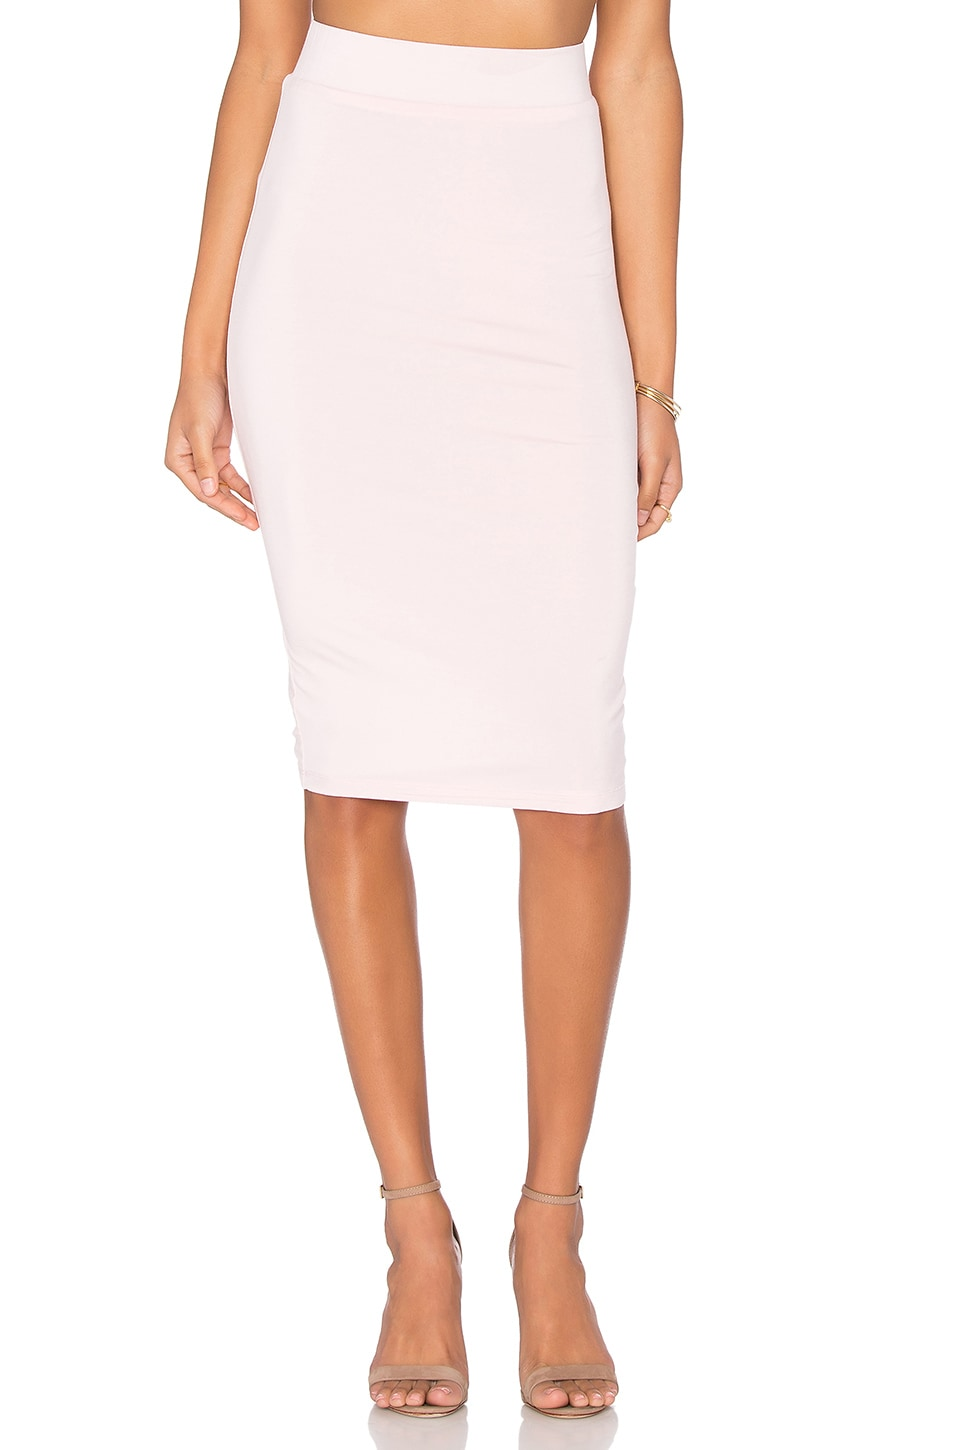 BLQ BASIQ Pencil Skirt in Light Pink